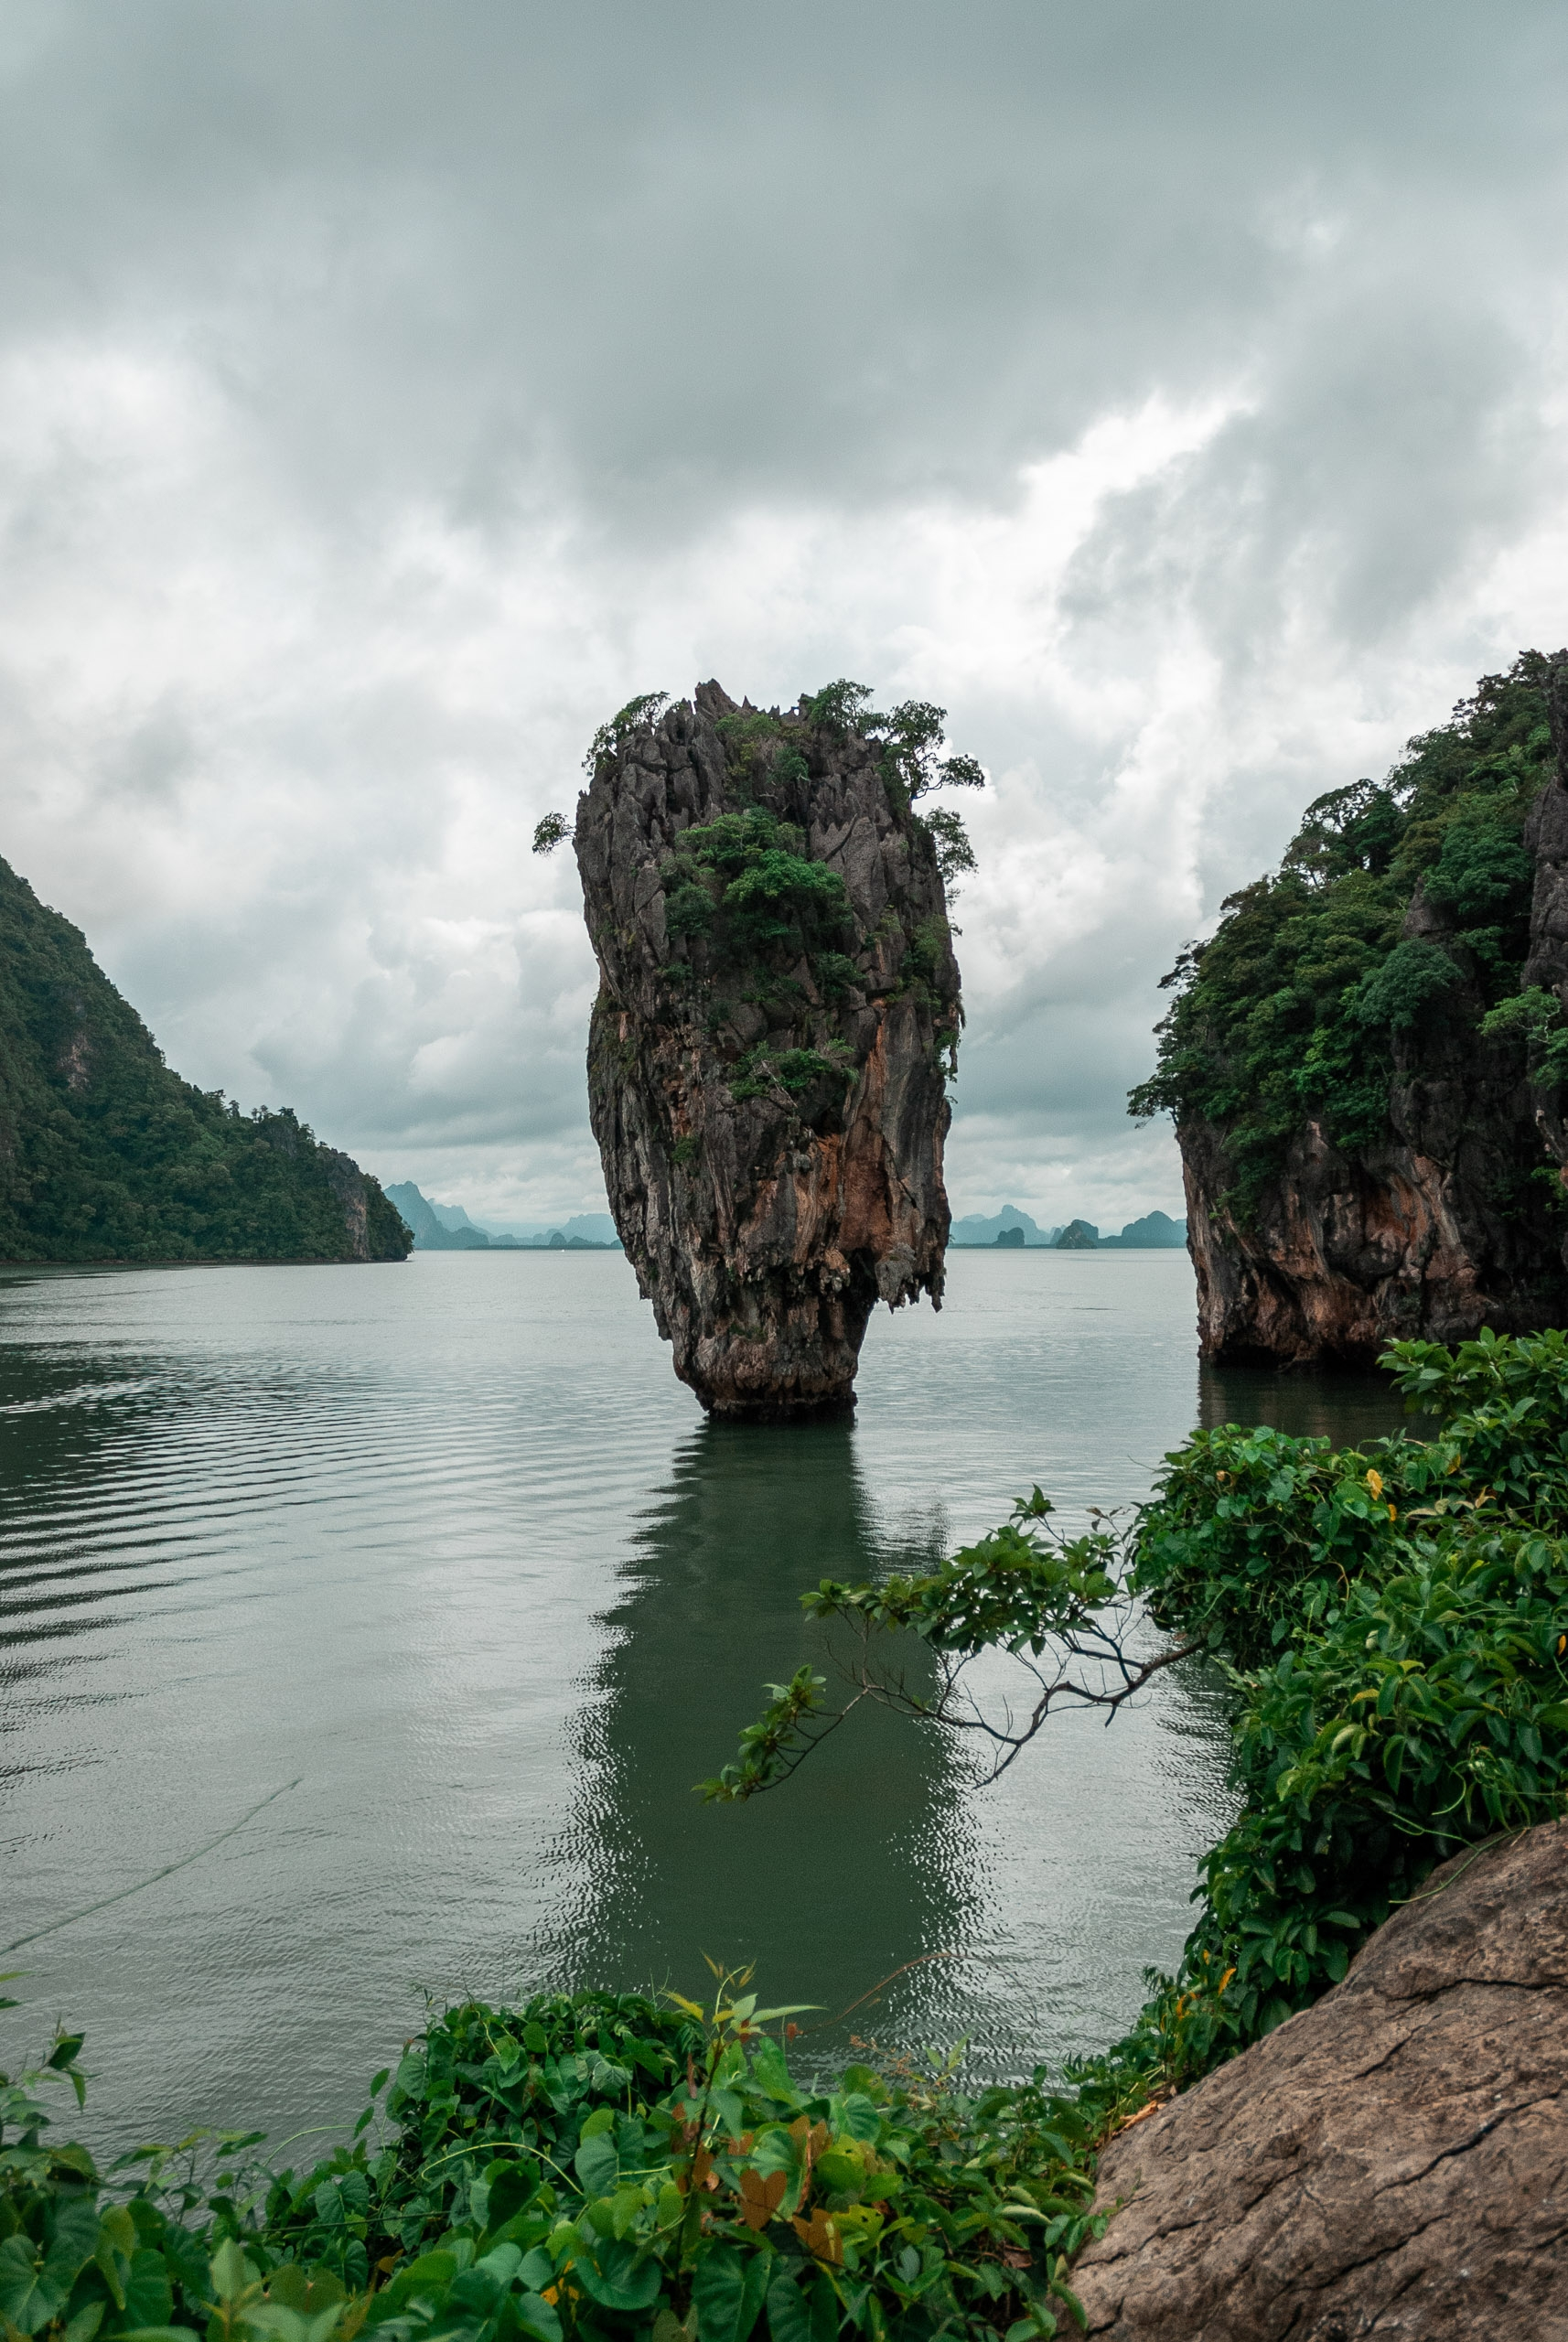 A Visit to James Bond Island